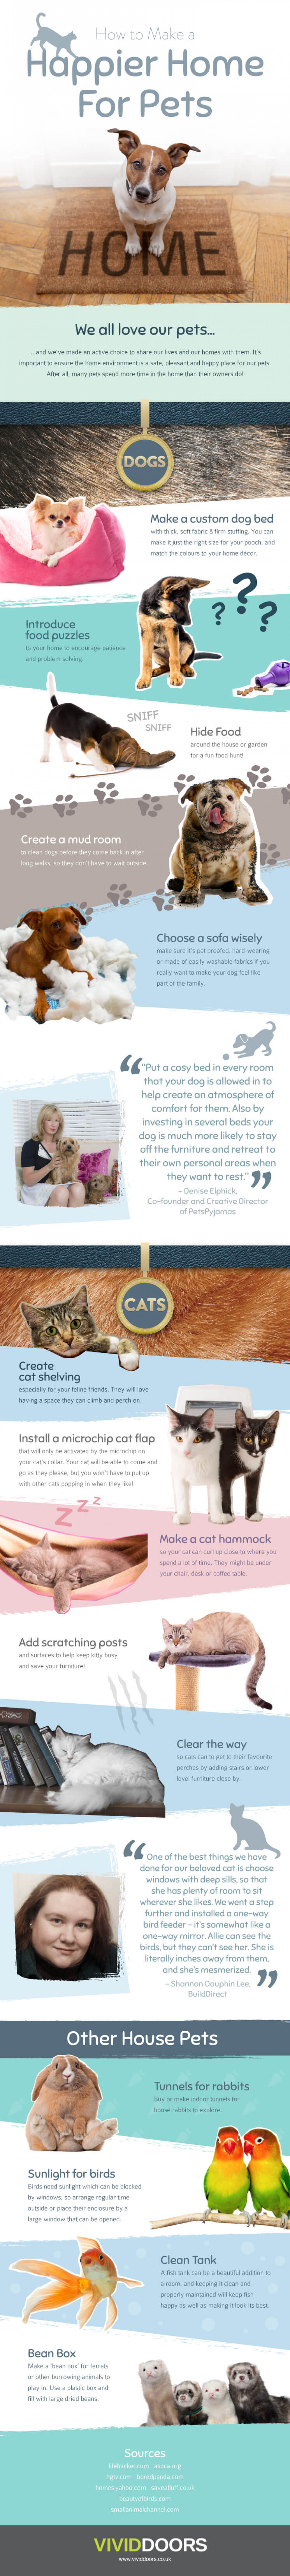 How to Make a Happier Home For Pets Infographic